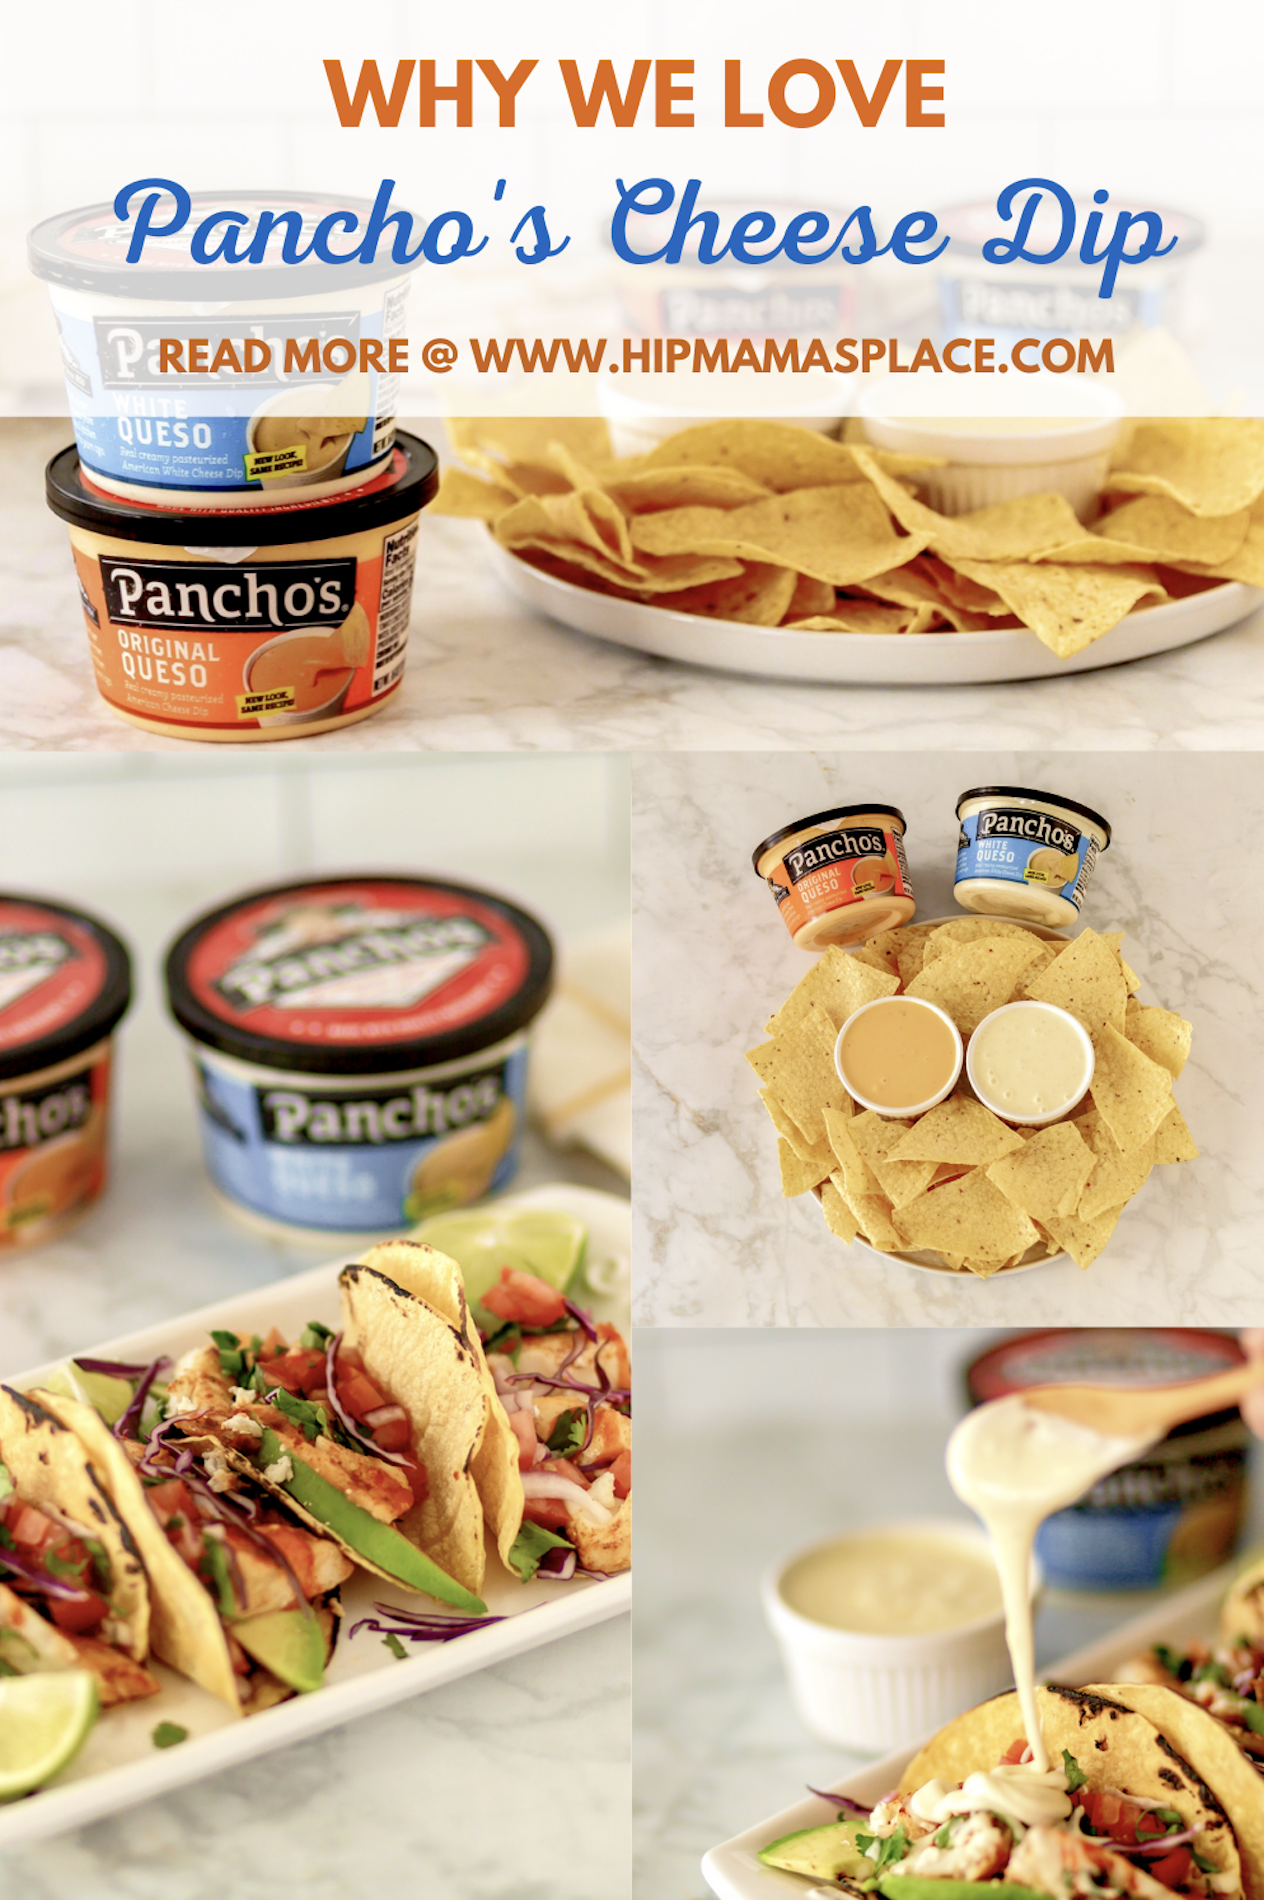 Burgers, hotdogs and s'mores may be on almost every barbecue menu, but the newest addition to our family's outdoor meals and snacks is Pancho's Queso Dip. #ad #BestDipOnThePlanet #PanchosPartner #quesodip #cheesedips #summersides #appetizers #nachodips